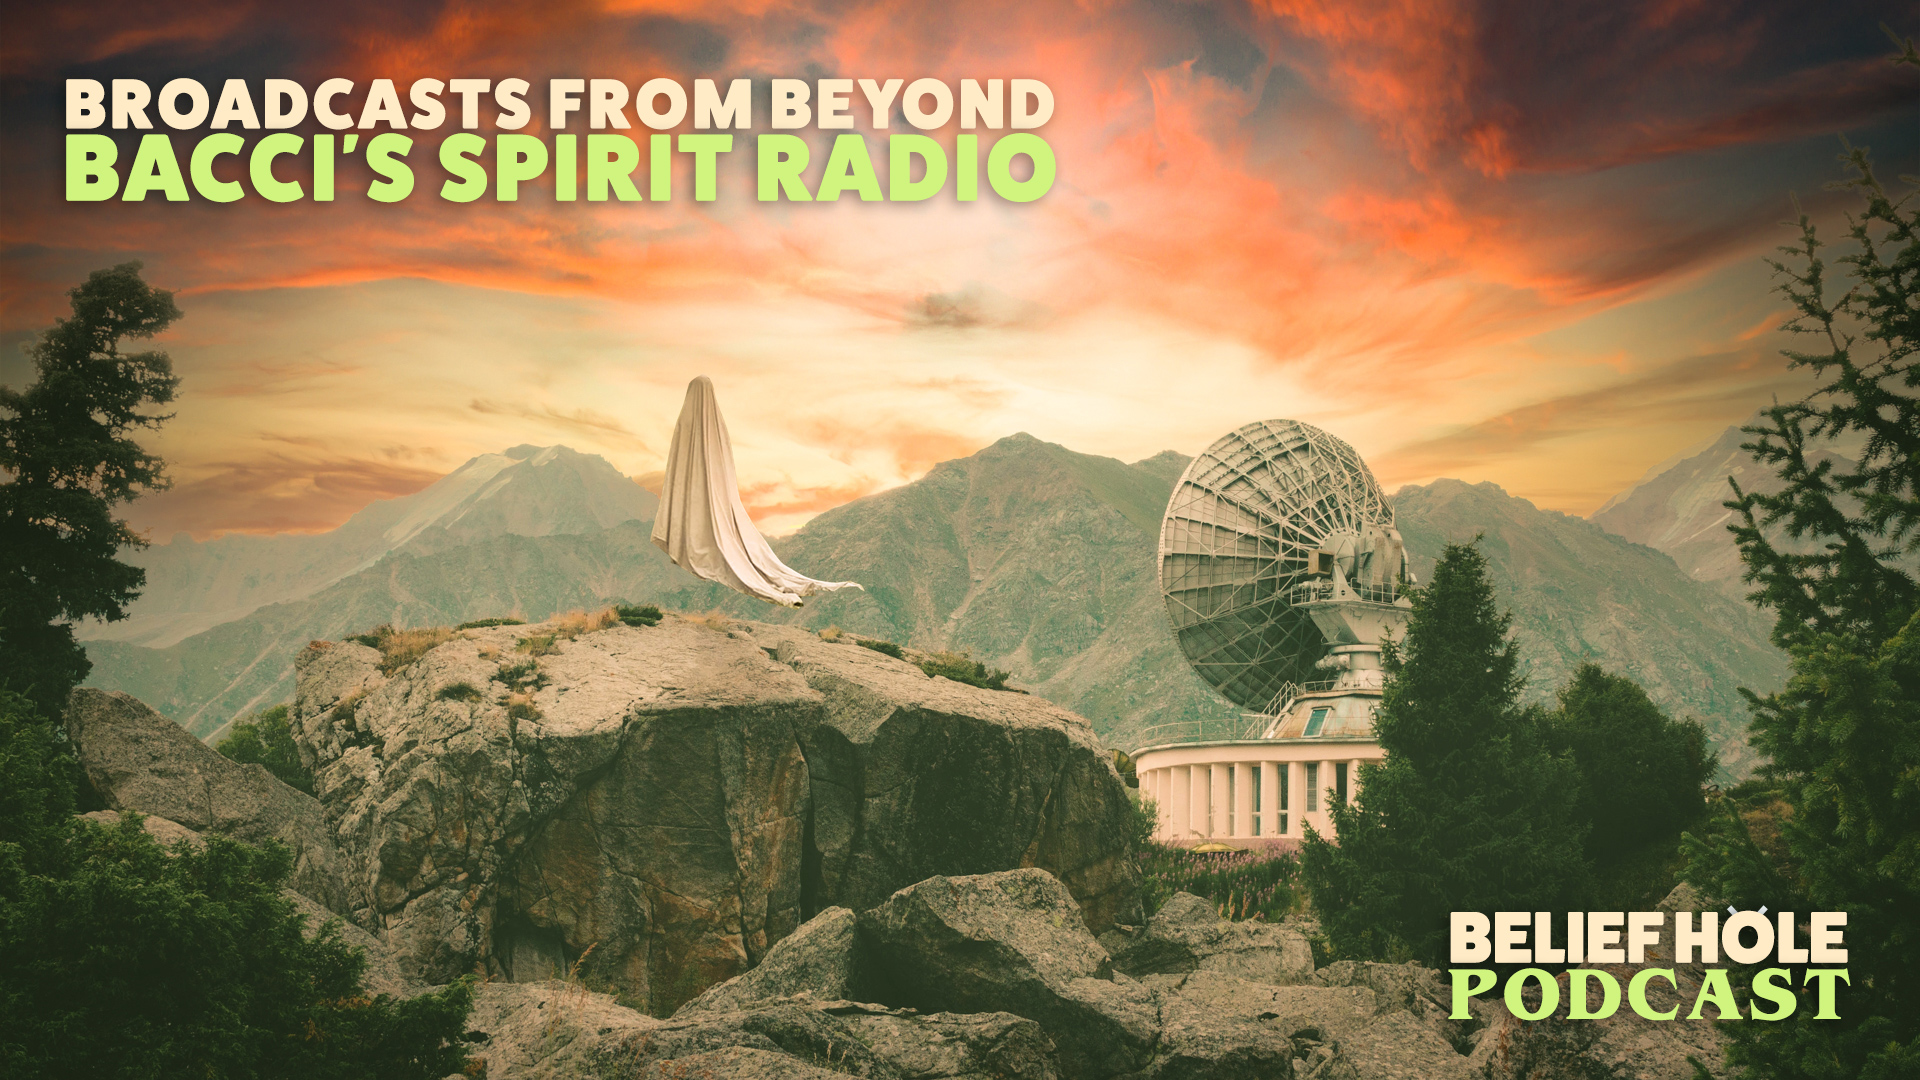 marcello-bacci-spirit-radio-ITC-Broadcasts-from-the-Beyond-paranormal-podcast-belief-hole